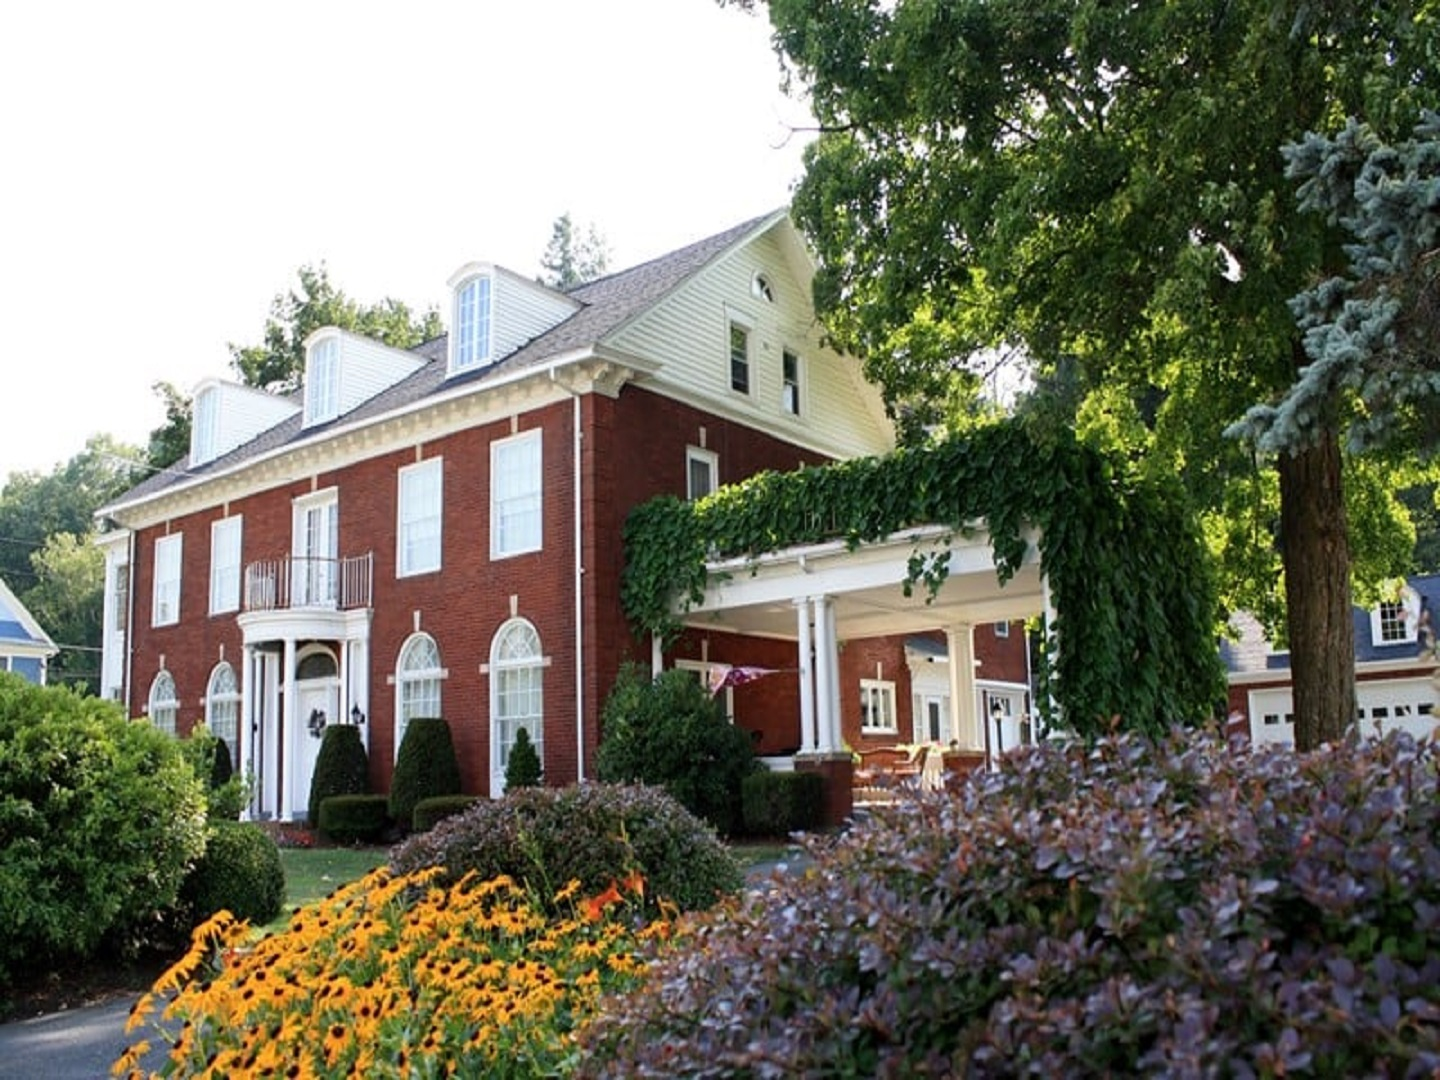 A house with bushes in front of a brick building at Mountain Laurel Bed & Breakfast.